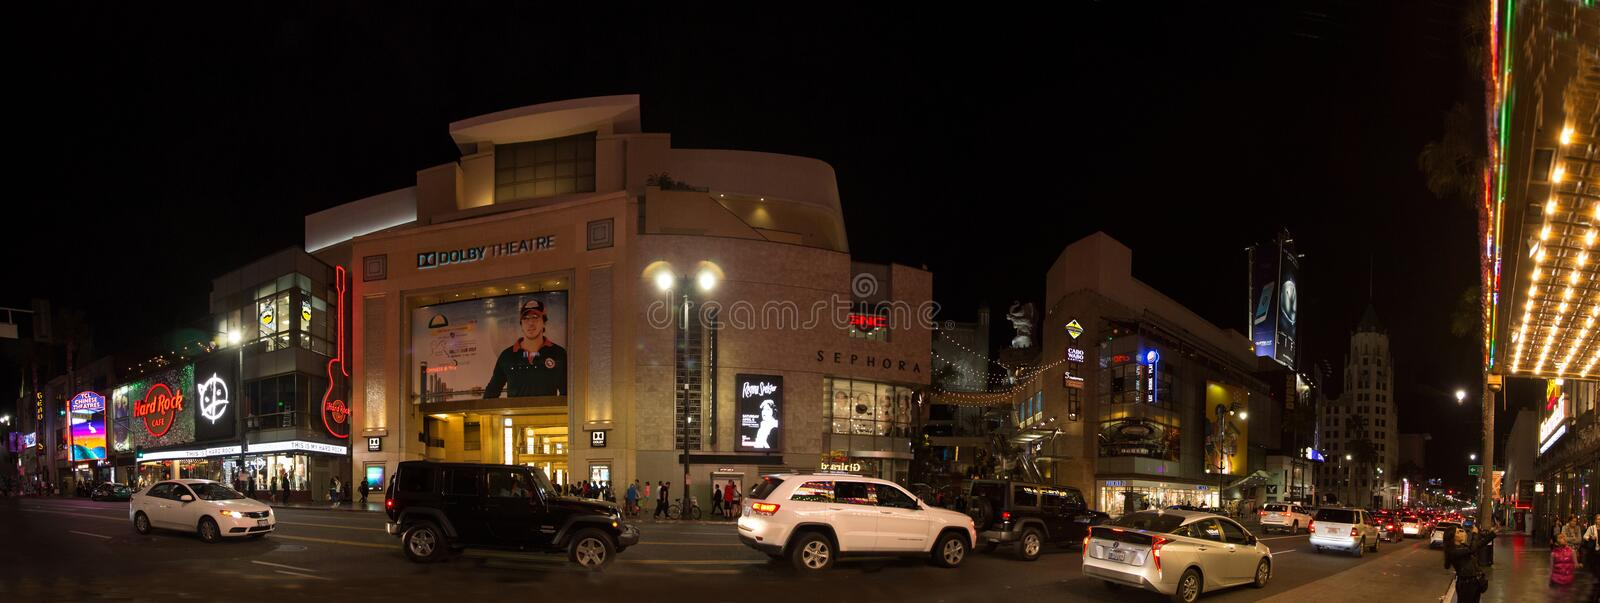 Dolbytheater auf Hollywood Boulevard stockbilder